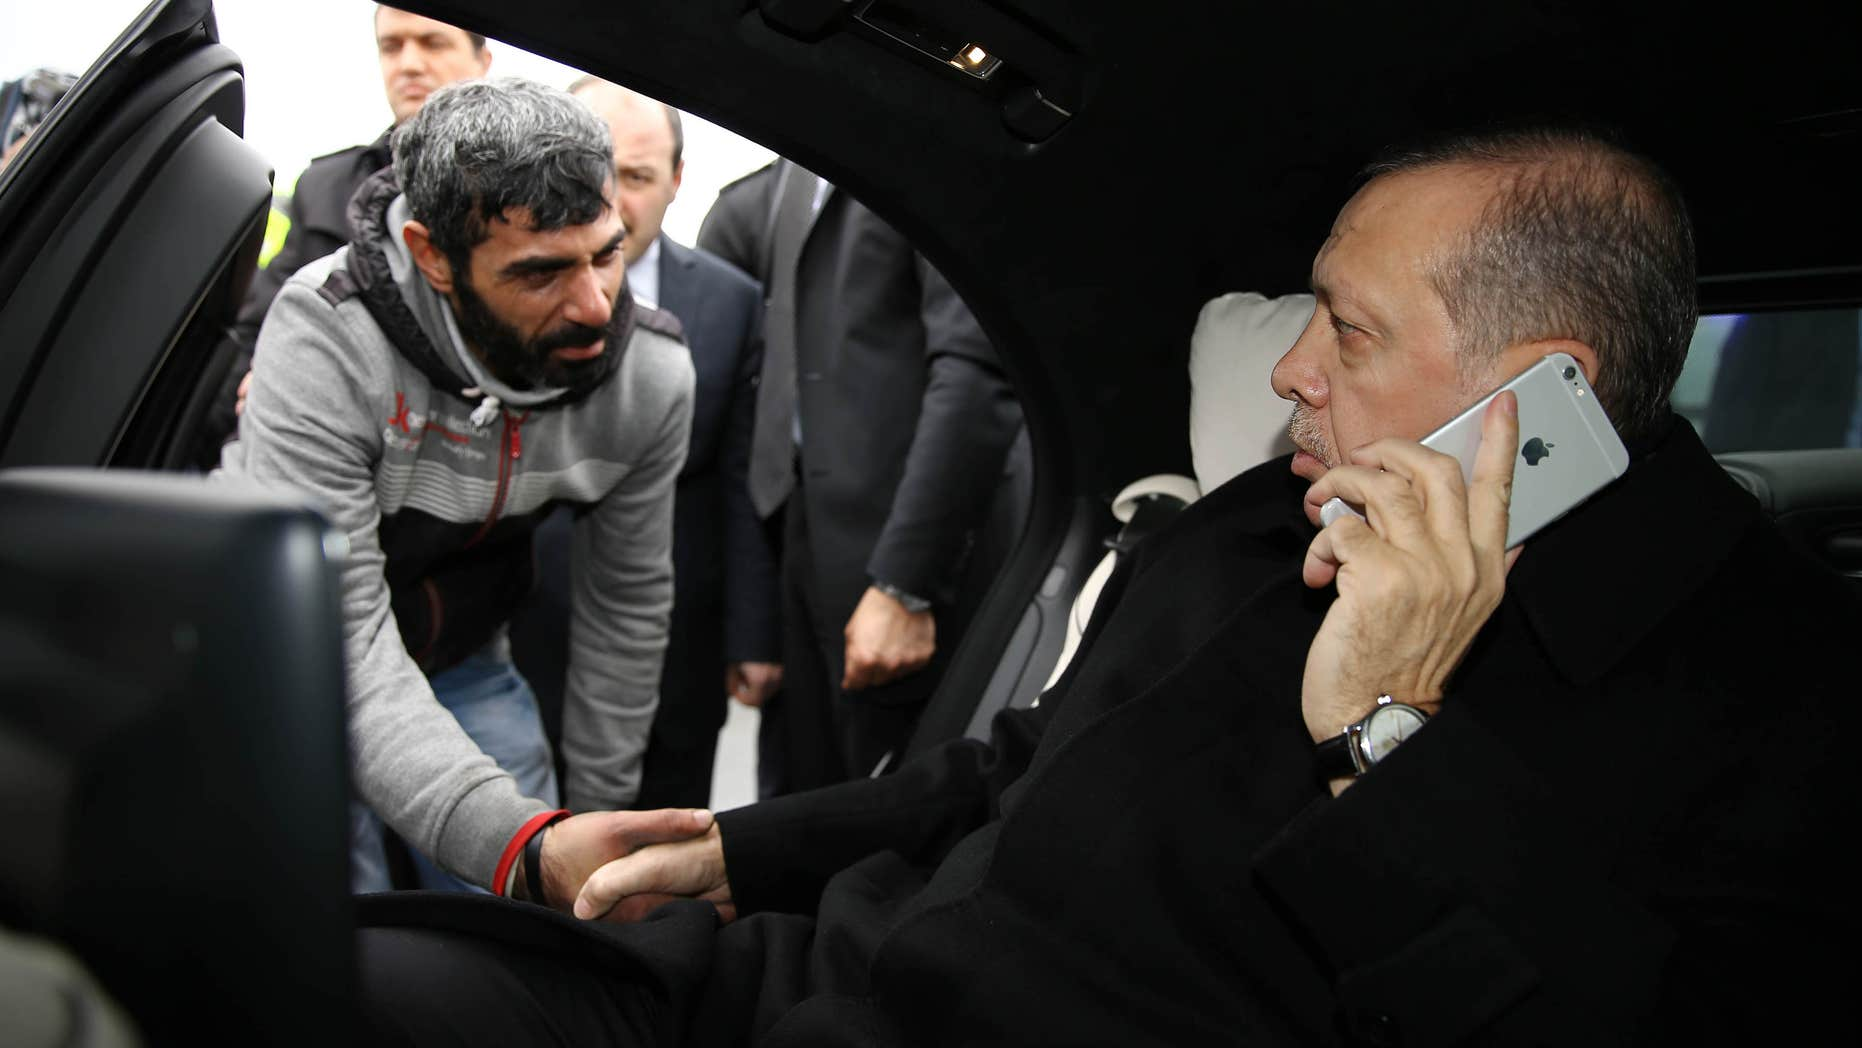 Dec. 25, 2015: Turkish President Recep Tayyip Erdogan, right, takes Vezir Cakras by hand while speaking on his mobile phone inside his car stationed over the Bosporus Bridge in Istanbul.